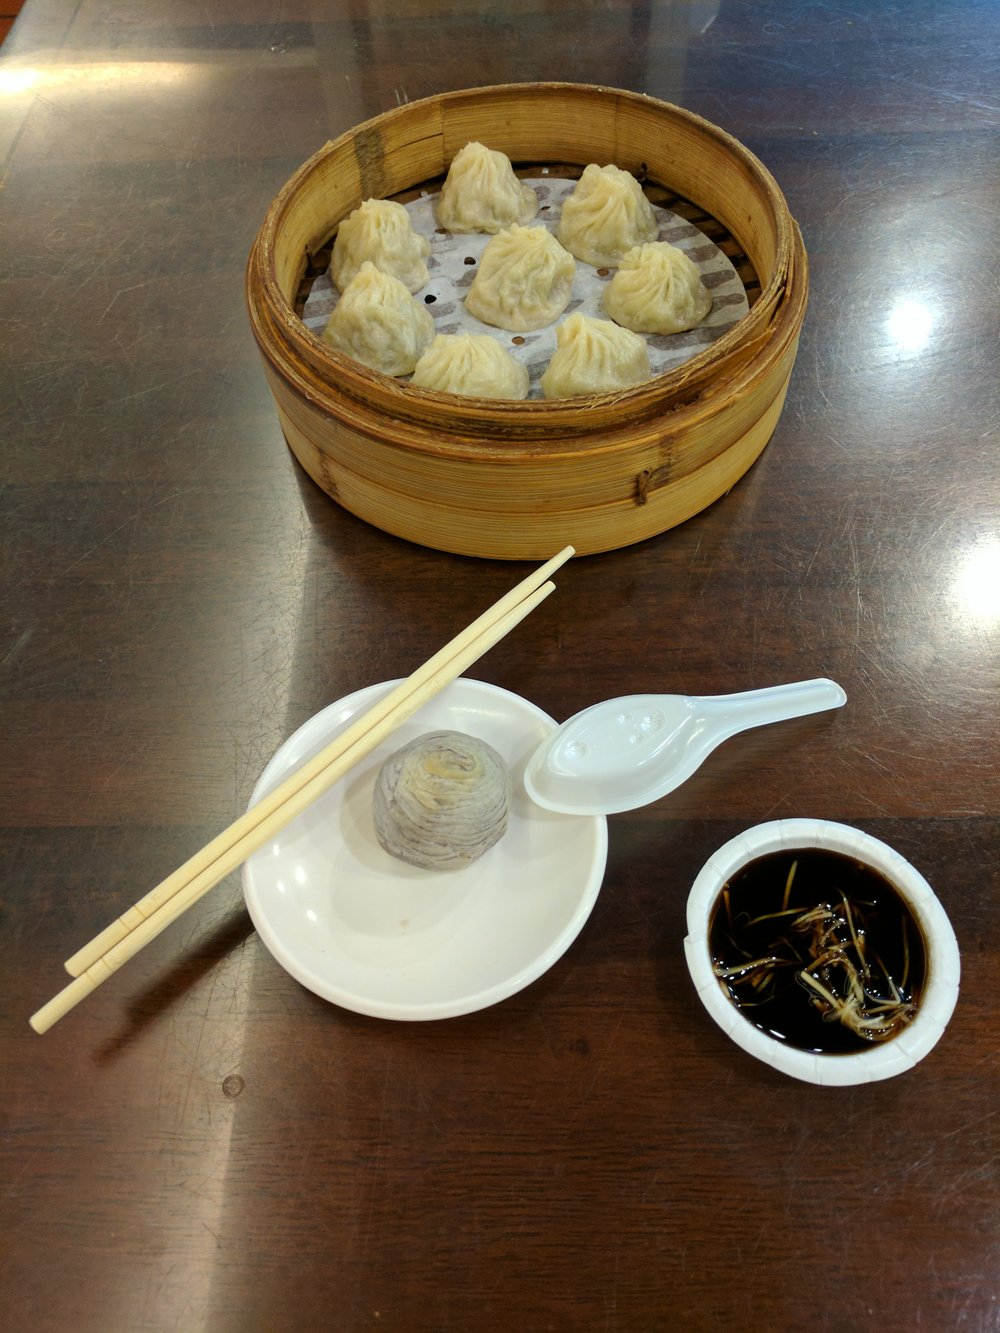 forget din tai fung.